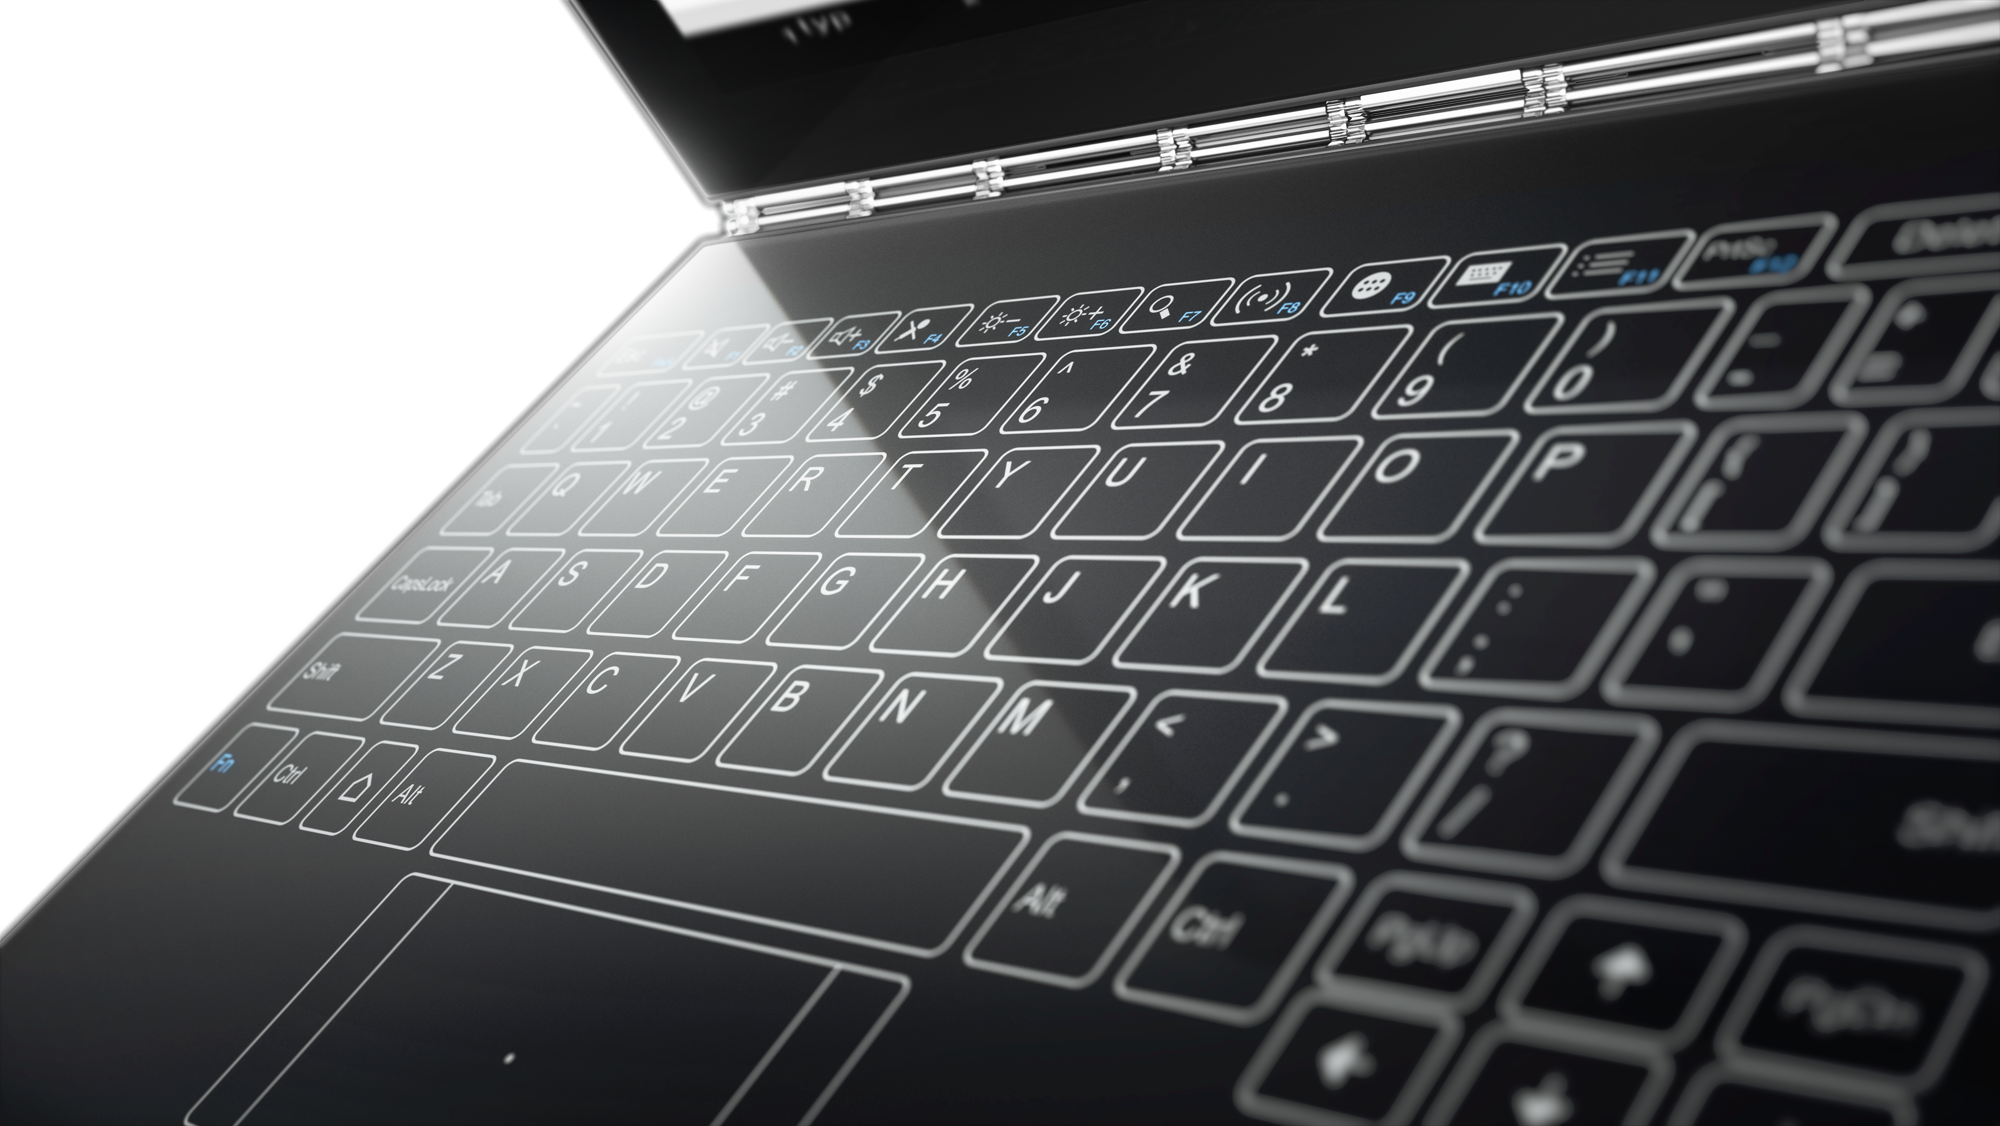 Drawing keyboard laptop. Lenovo yoga book features